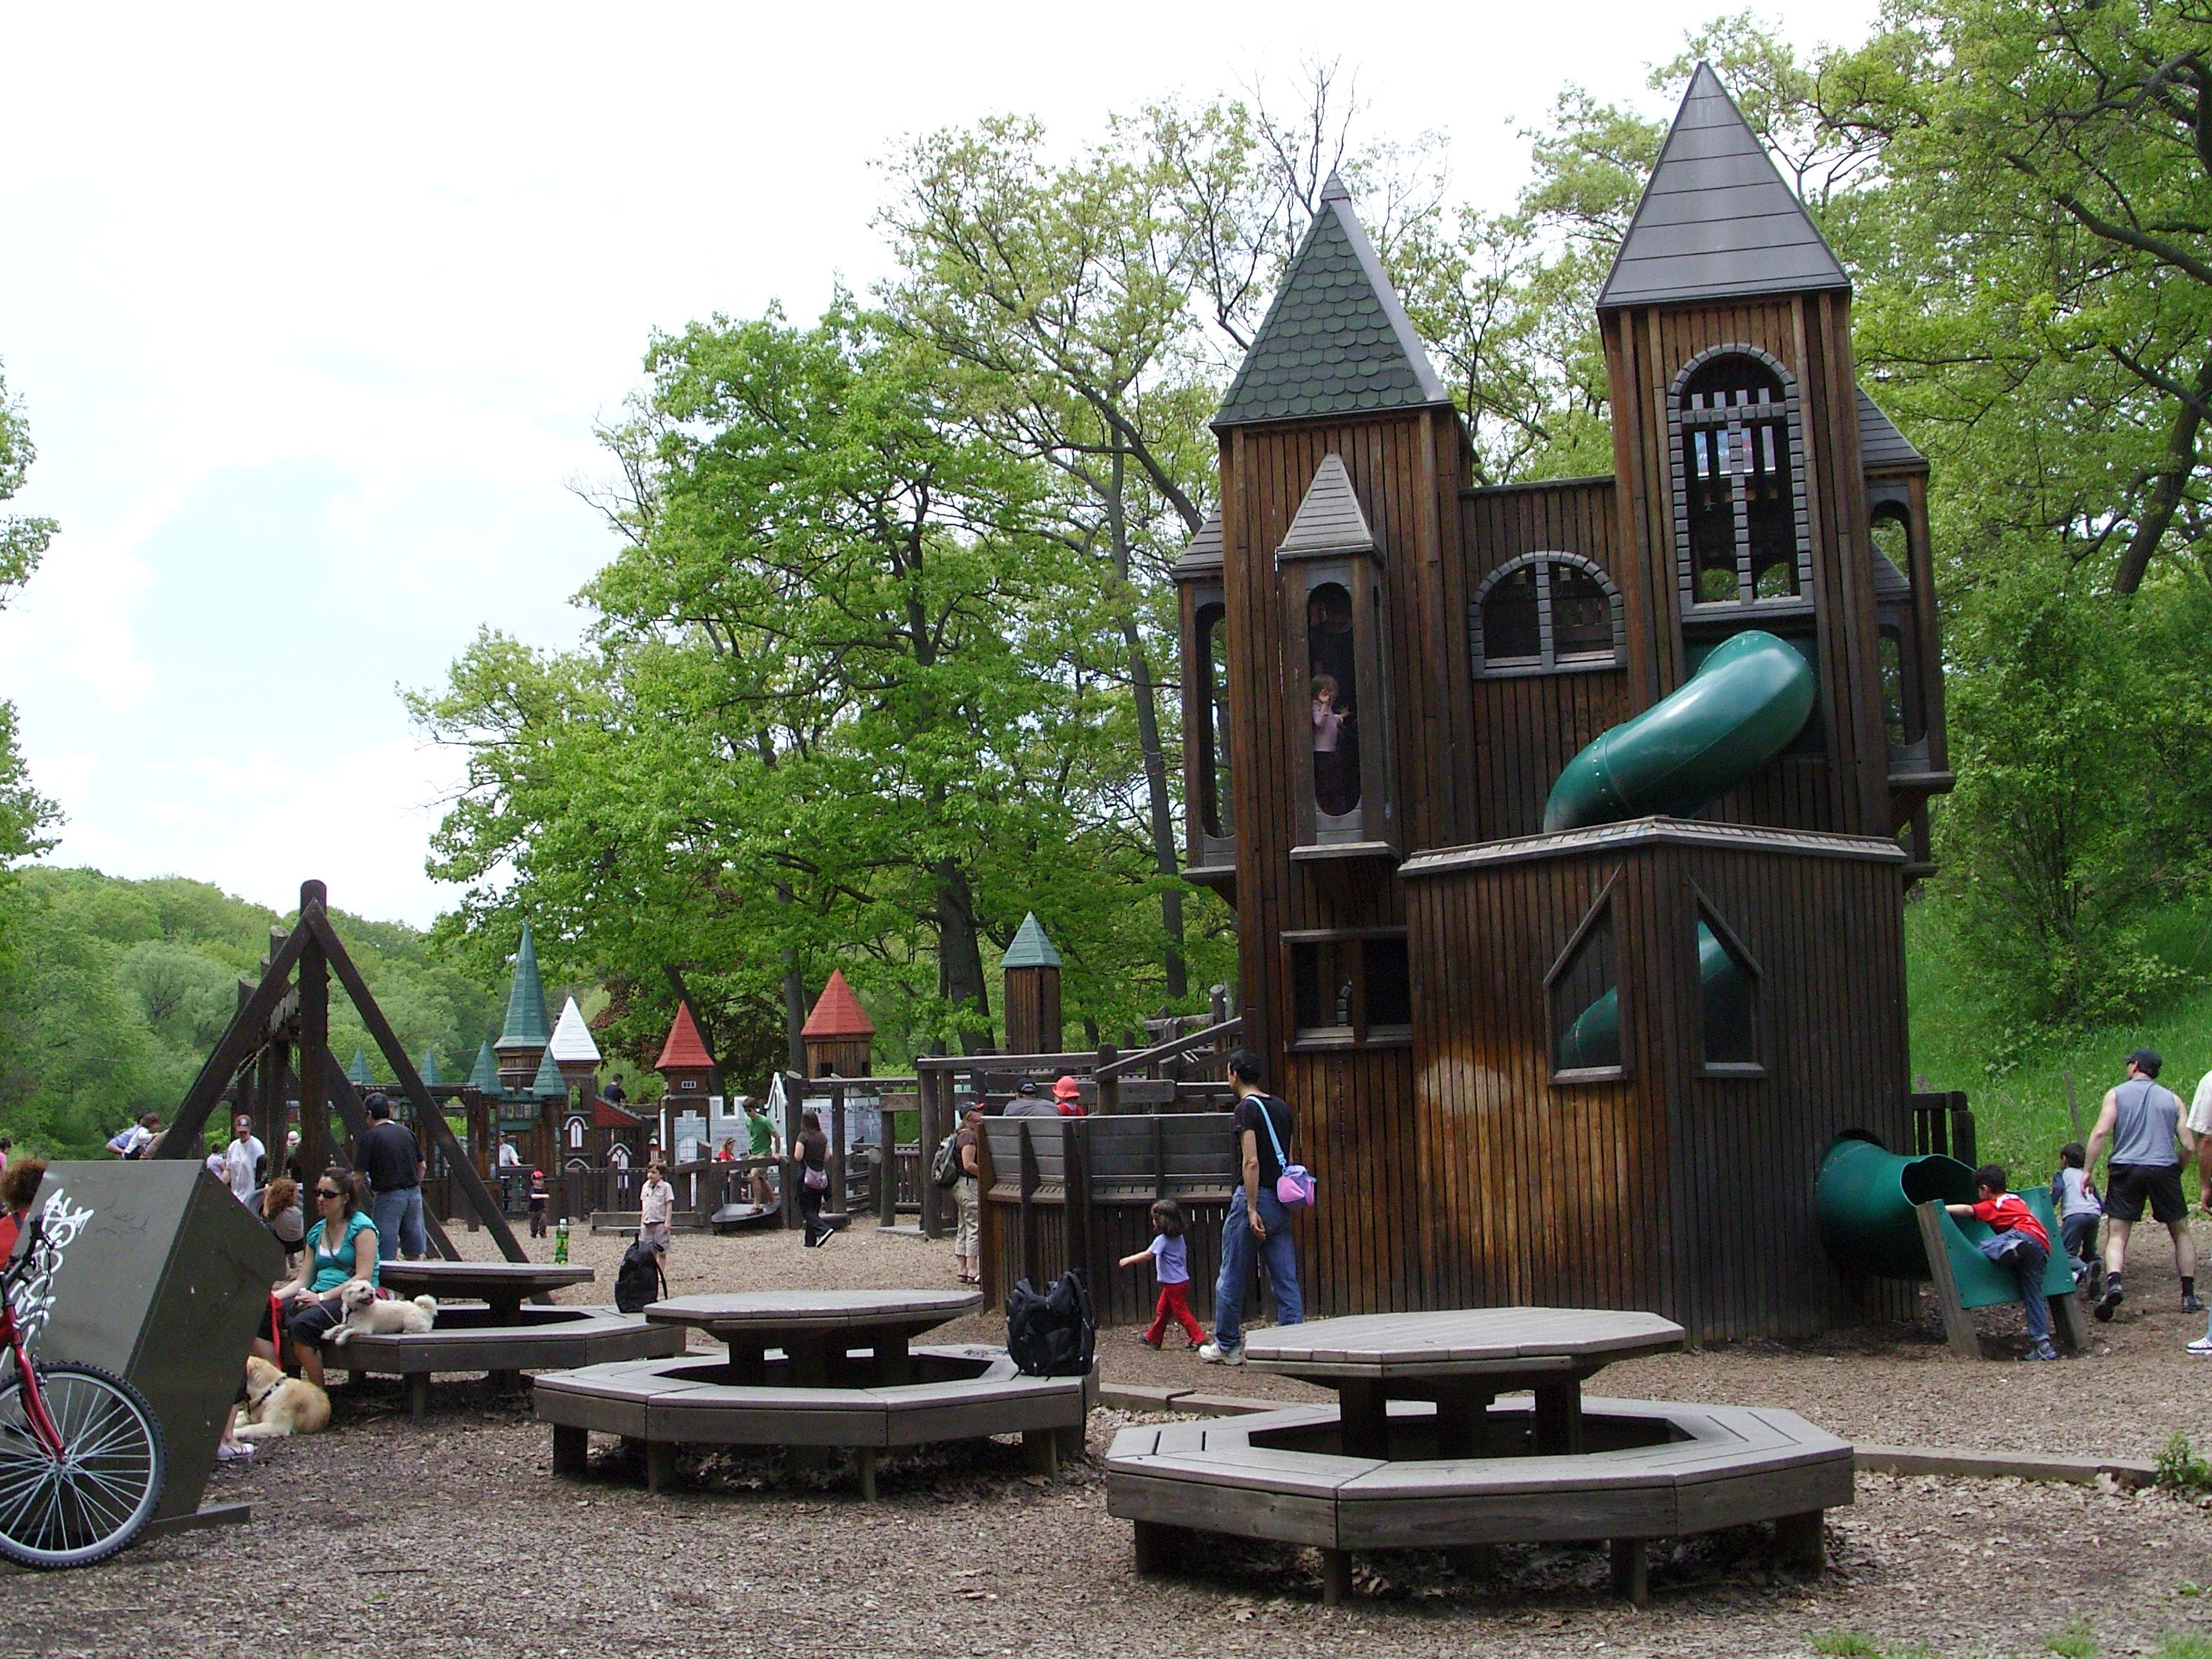 This Is A Pretty Amazing Playground In Toronto High Park